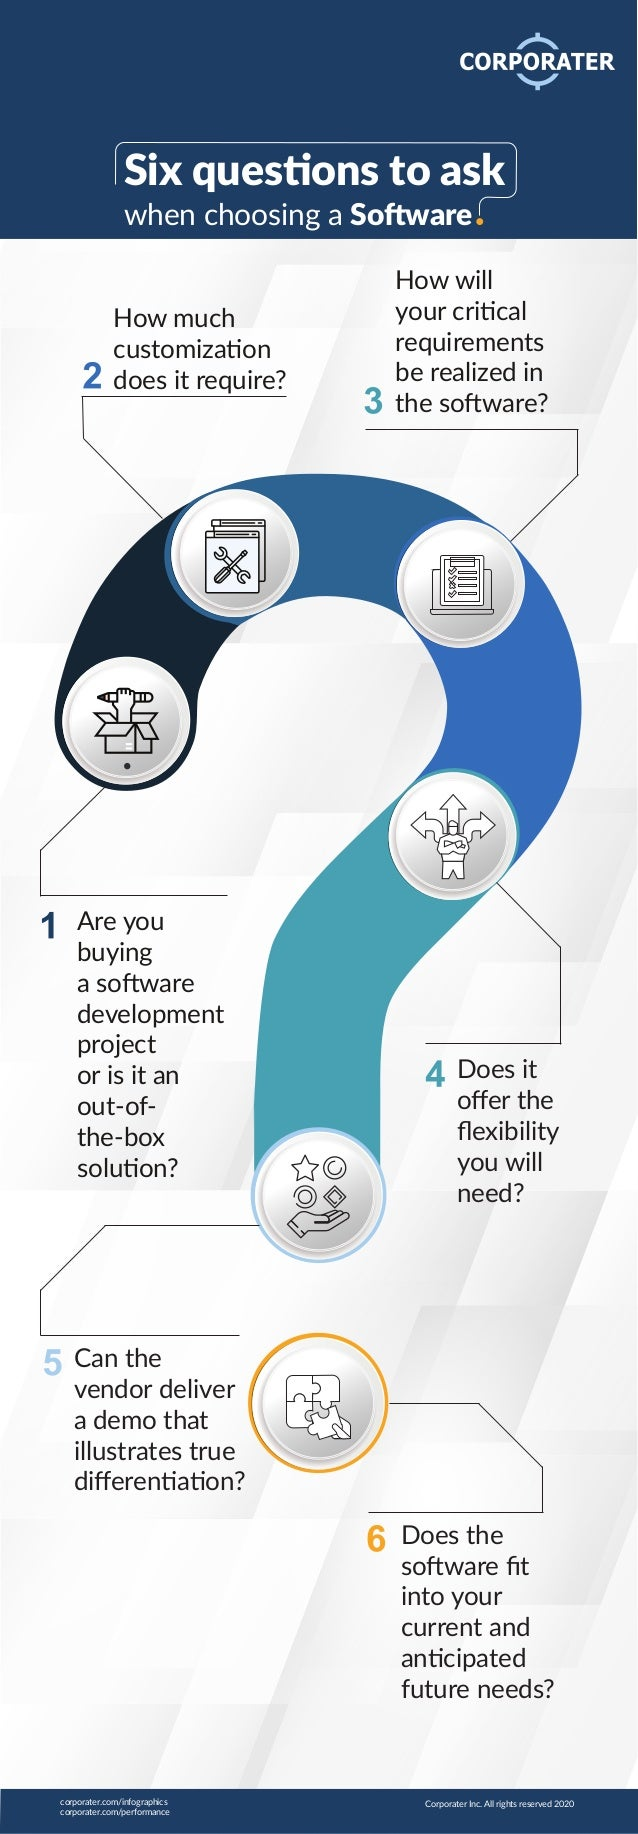 How much customization does it require? How will your critical requirements be realized in the software? Does it offer the ...